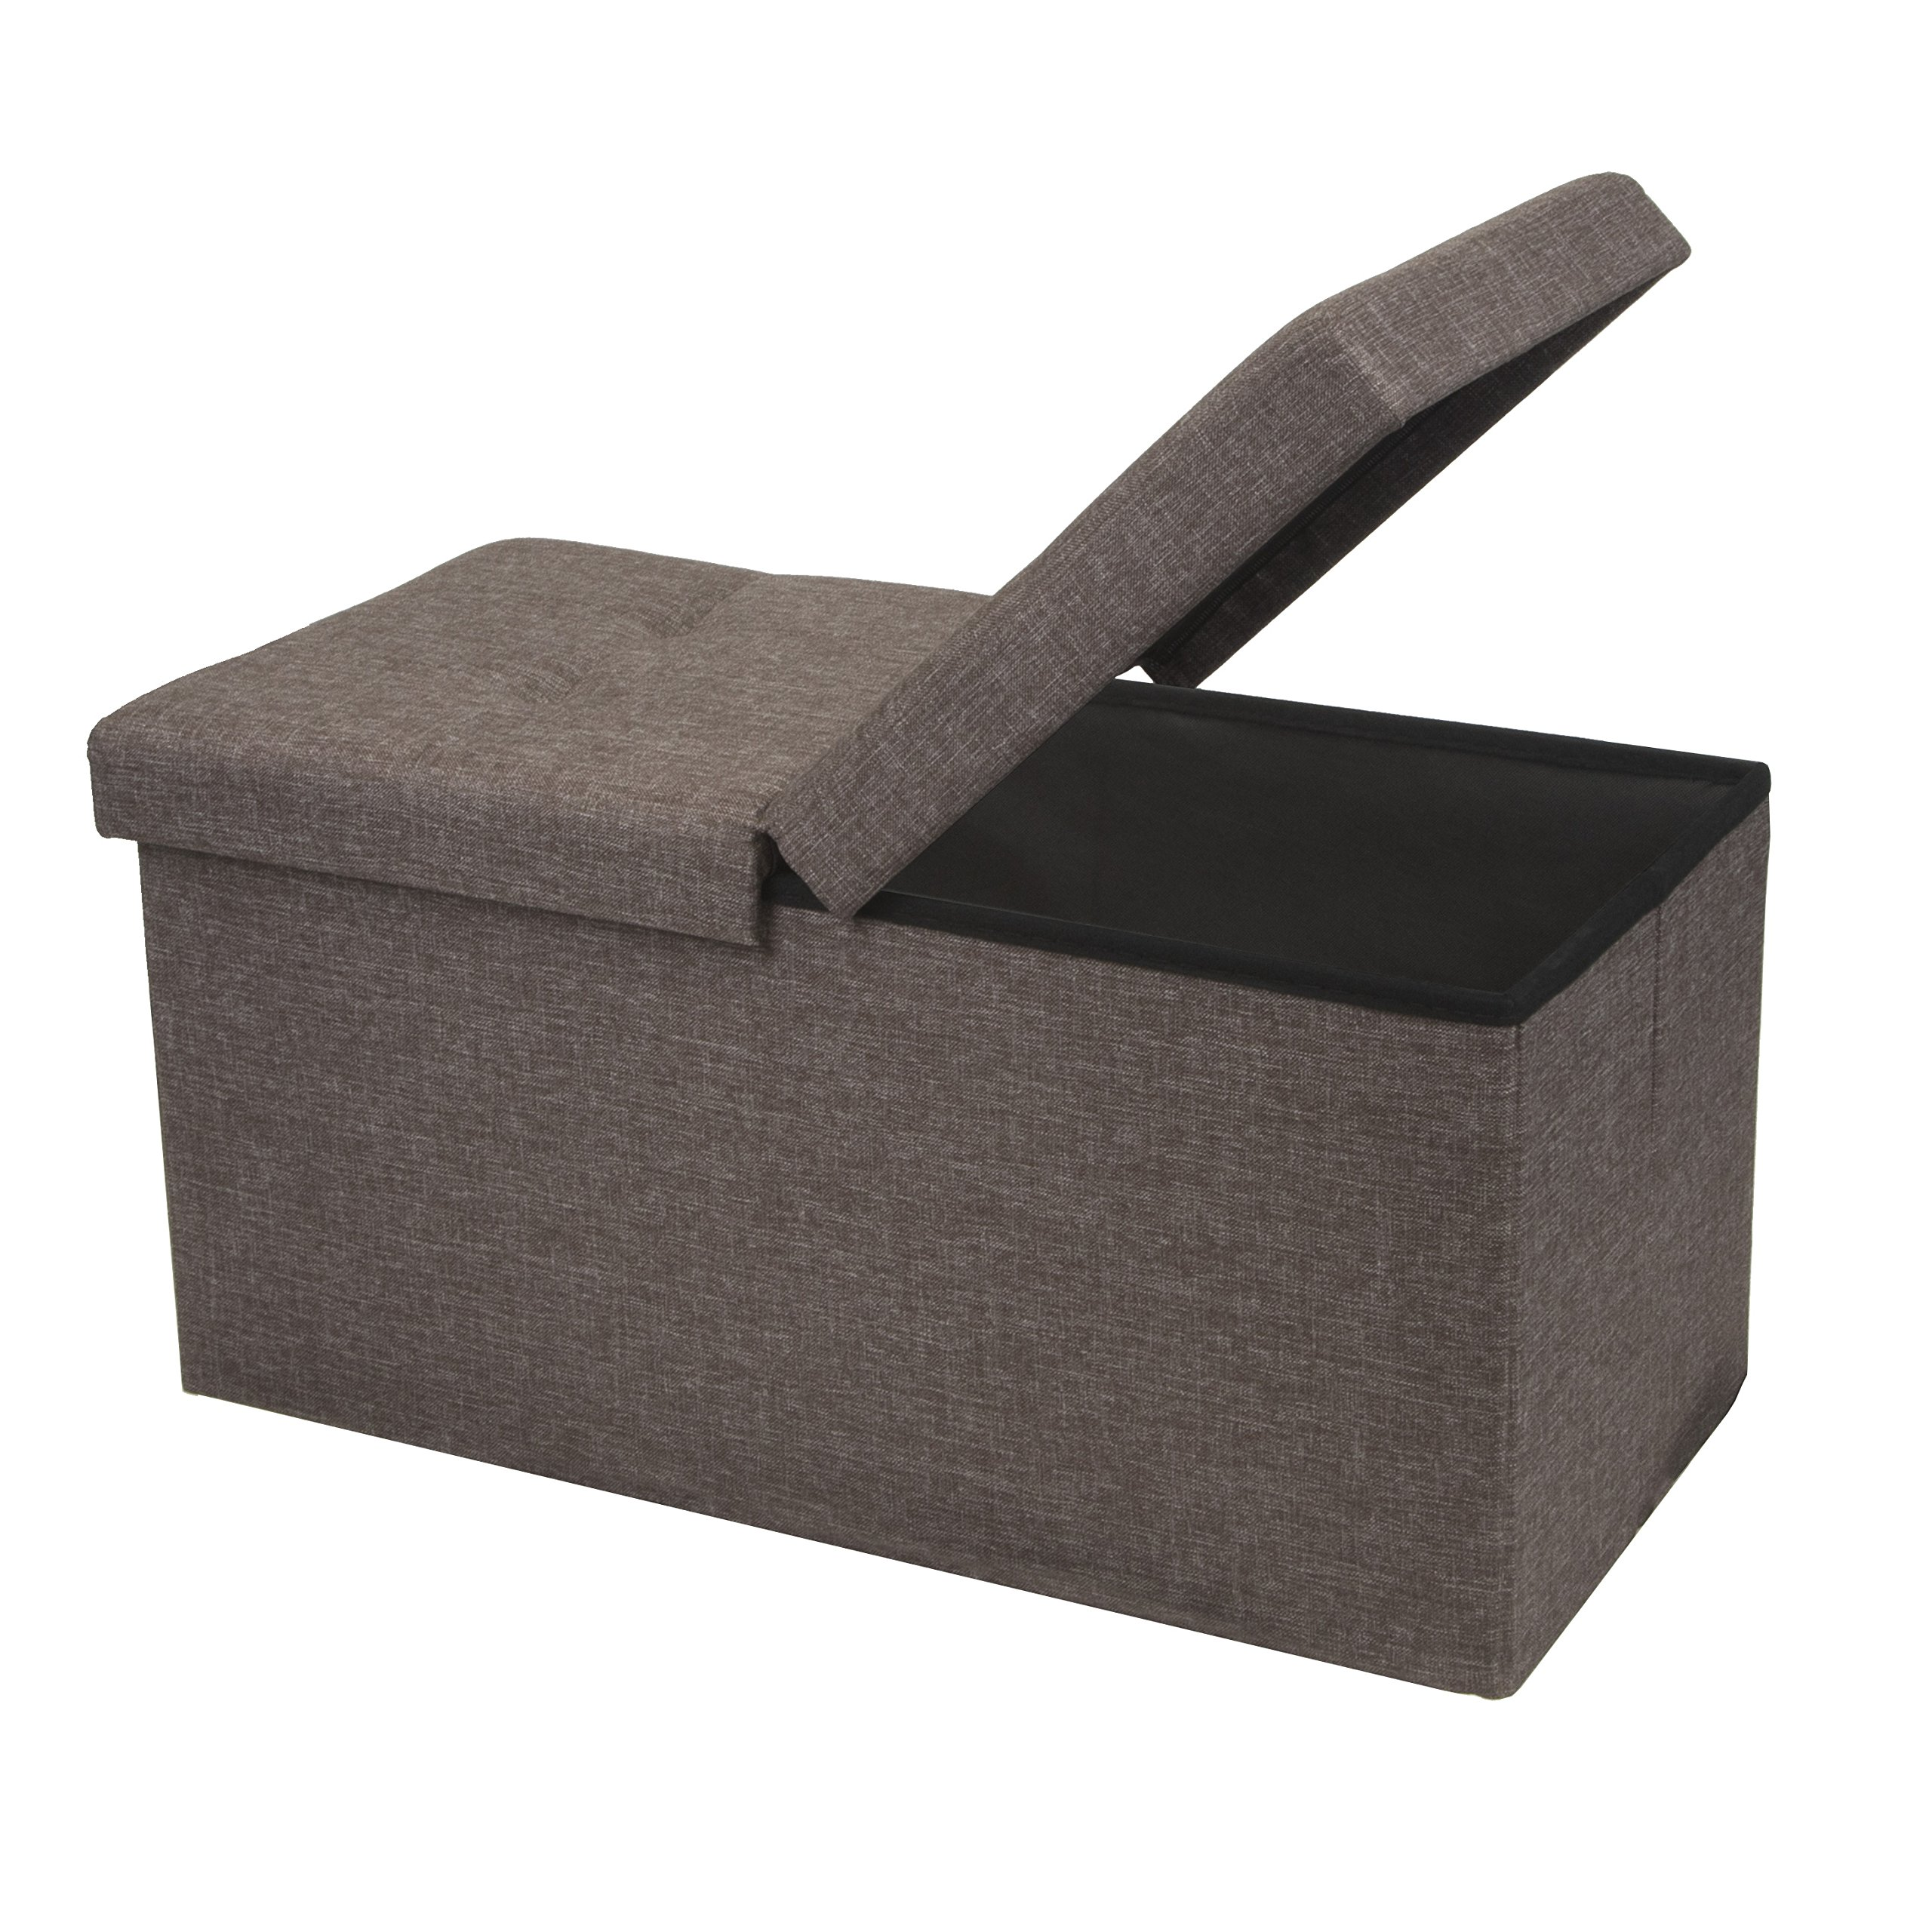 Otto & Ben 30'' Storage Ottoman - Folding Toy Box Chest with Smart Lift Top, Linen Fabric Ottomans Bench Foot Rest for Bedroom, Brown